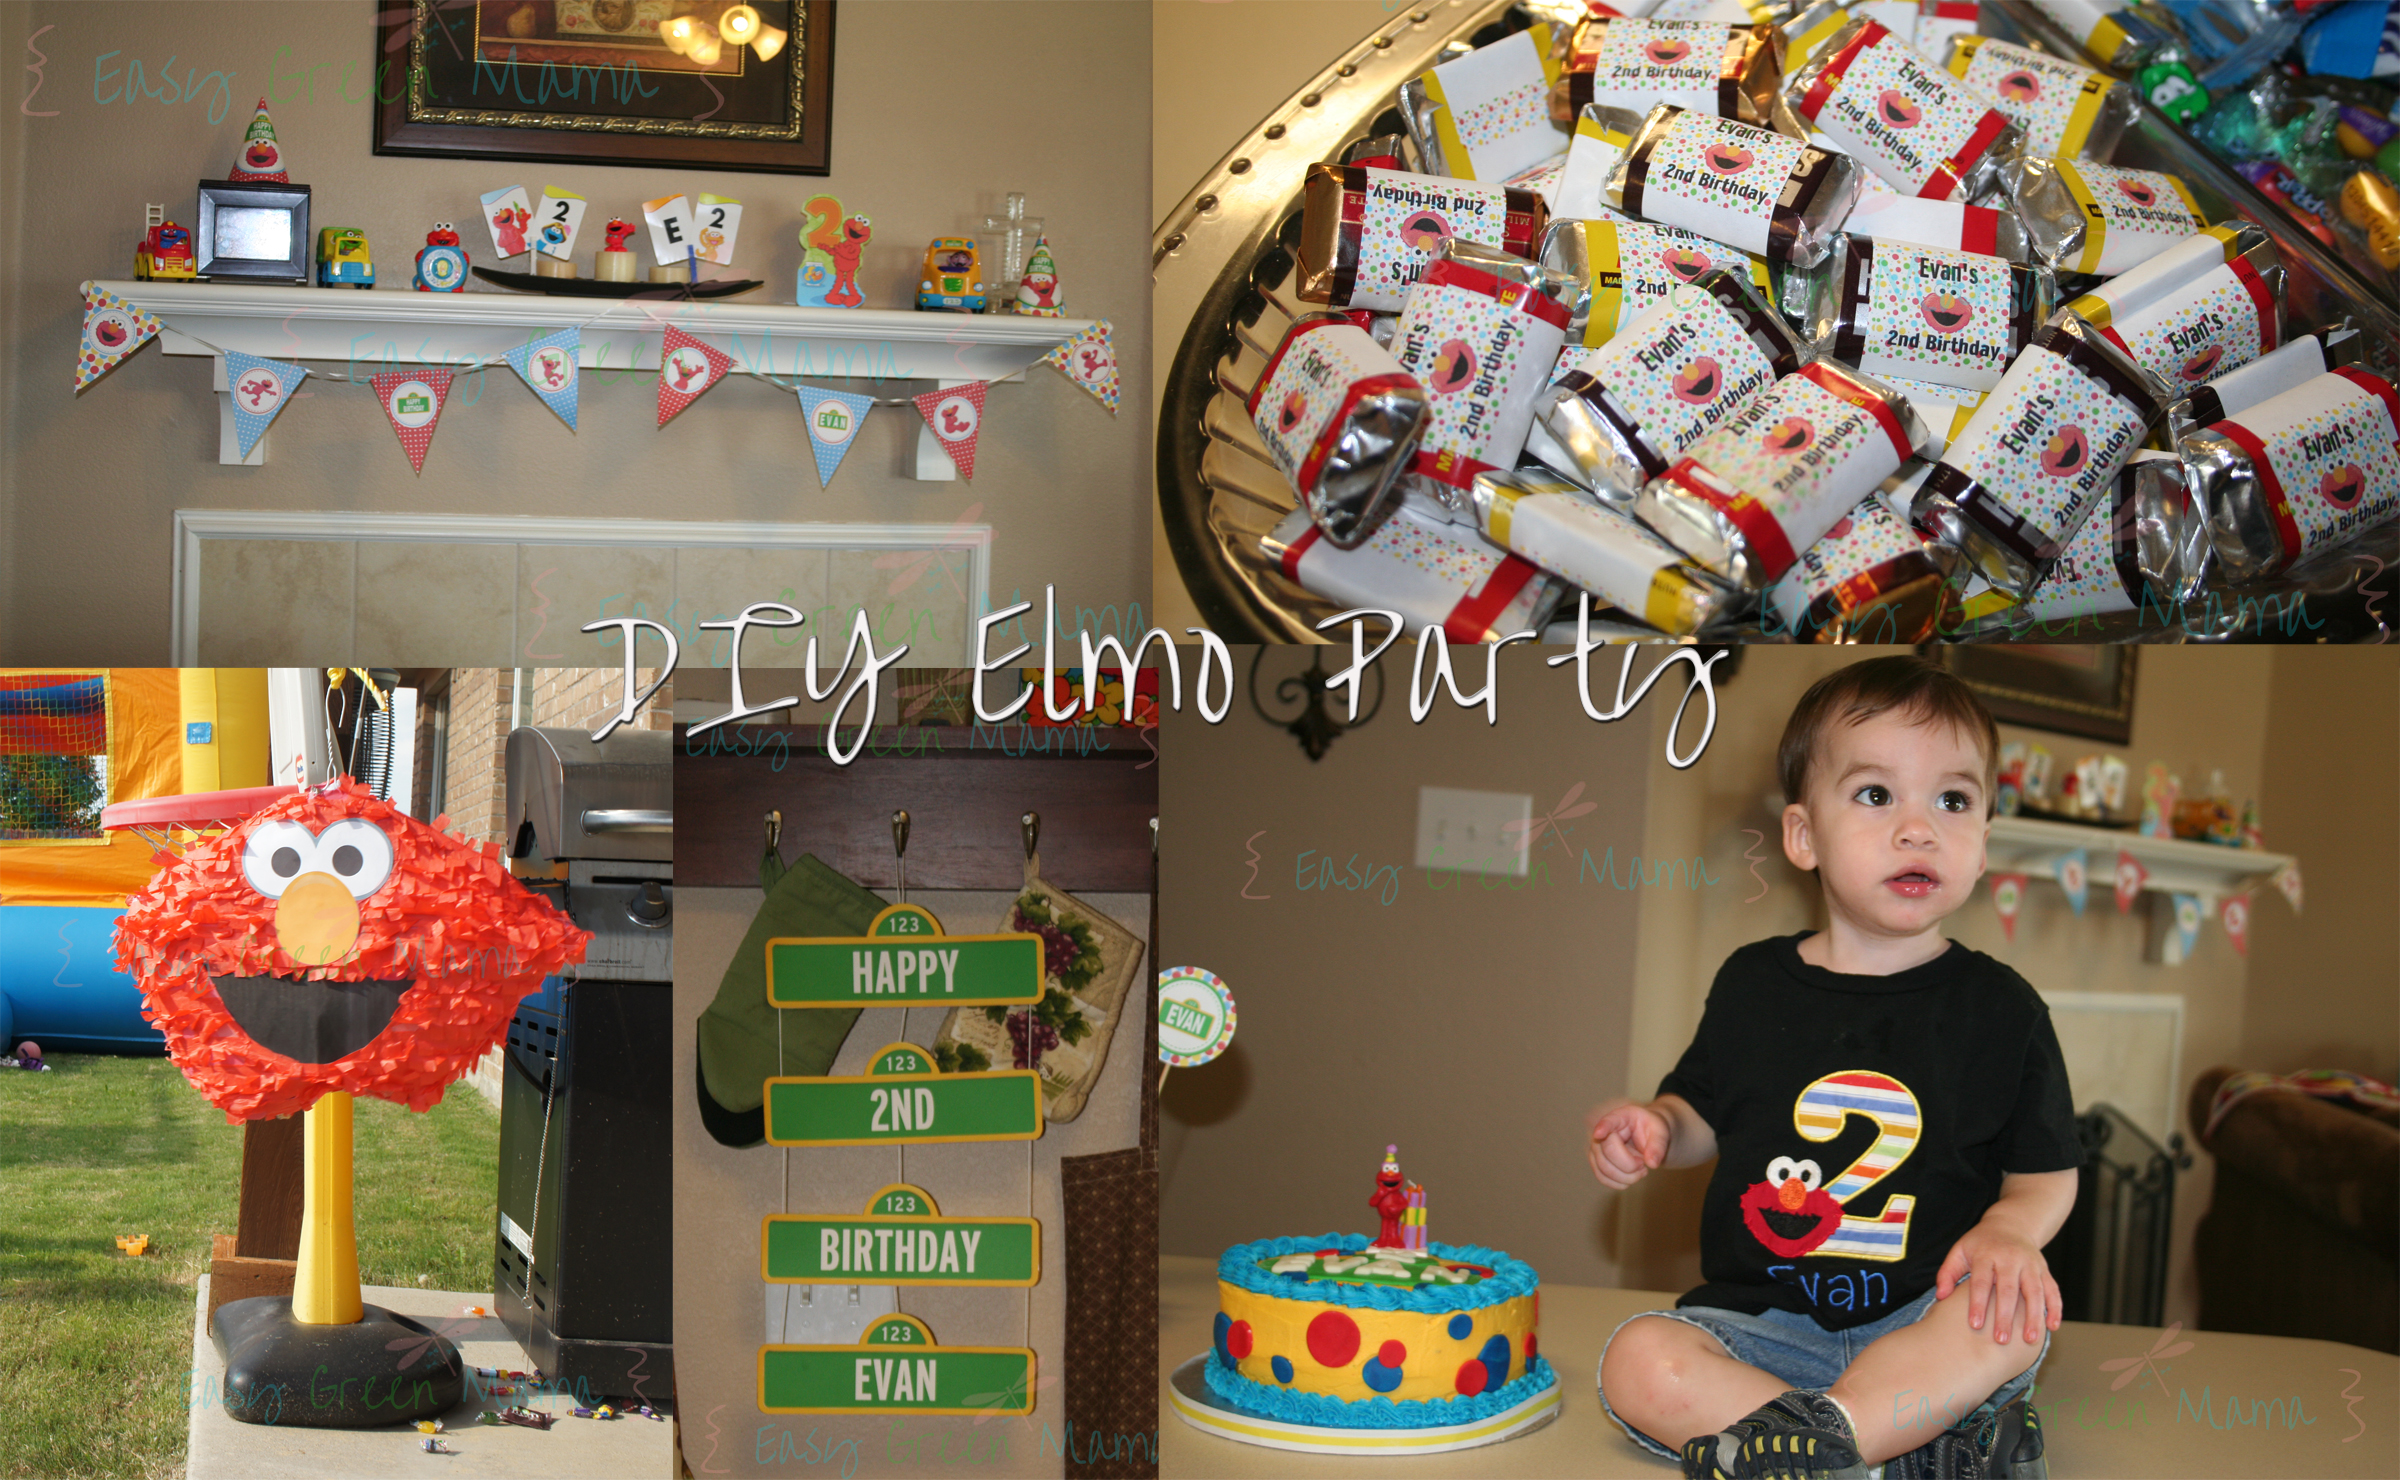 Diy elmo party ideas with free printables from rays of bliss solutioingenieria Image collections